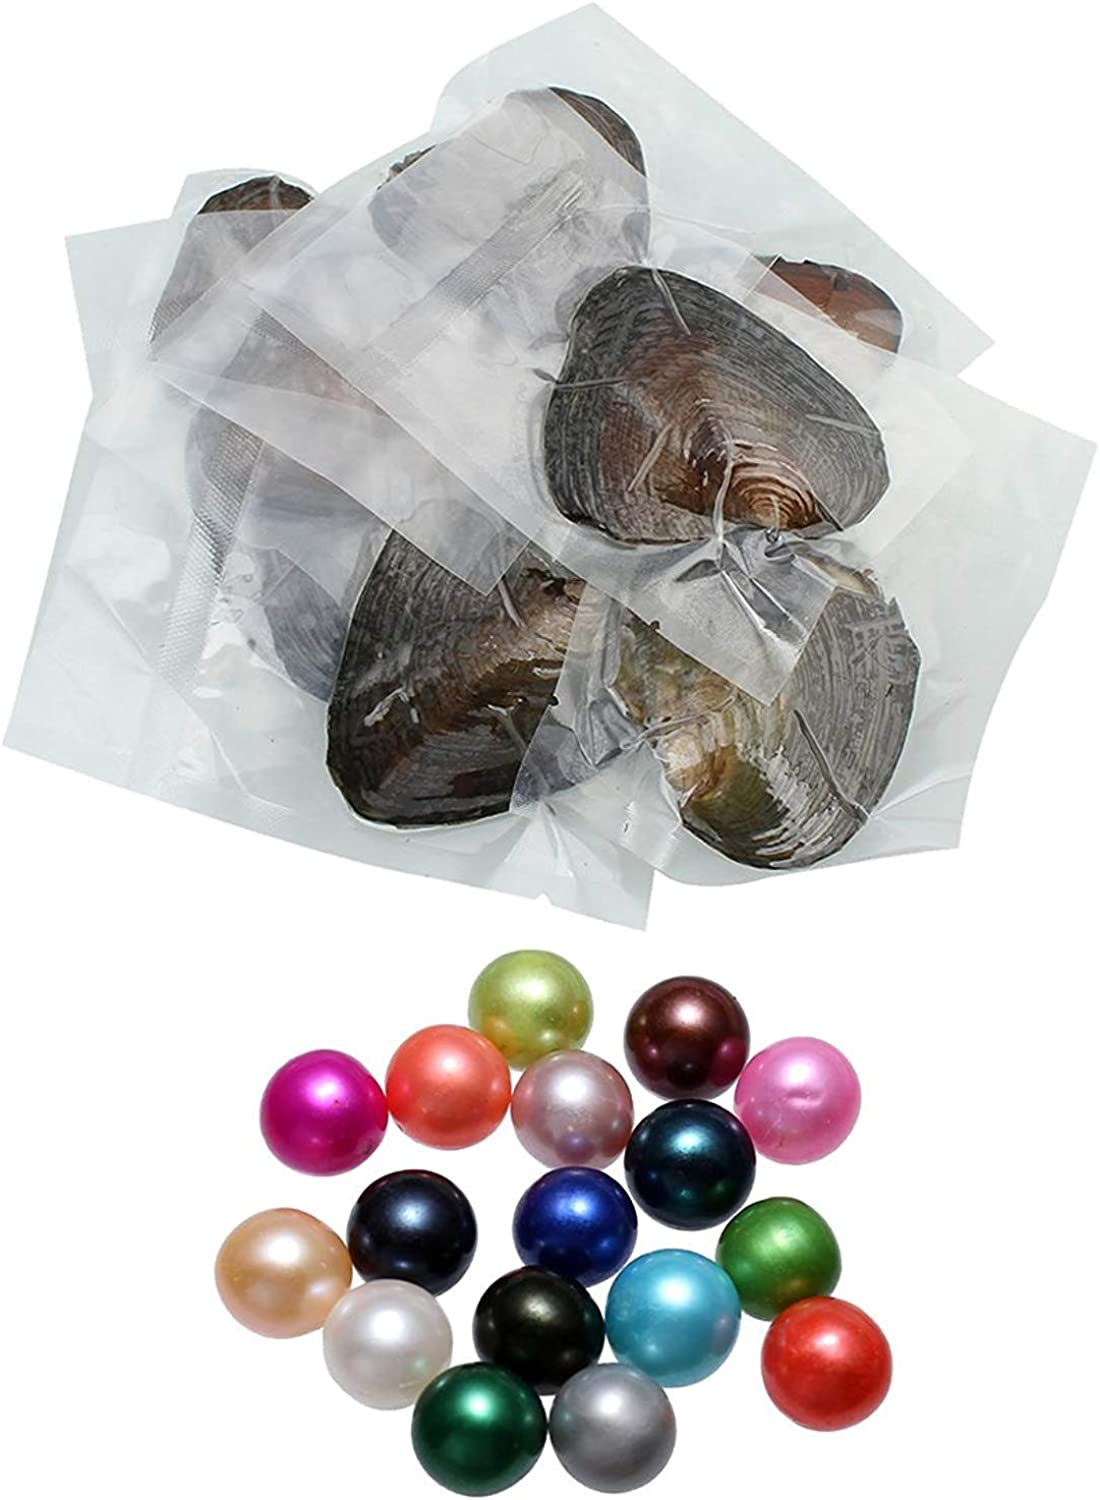 unbrand Freshwater Oysters Pearl, 20PCS/Lot Freshwater Cultured Pearl Oyster with Pearl Inside Oysters Random Colors Single Bead Round Pearls DIY Jewelry Making